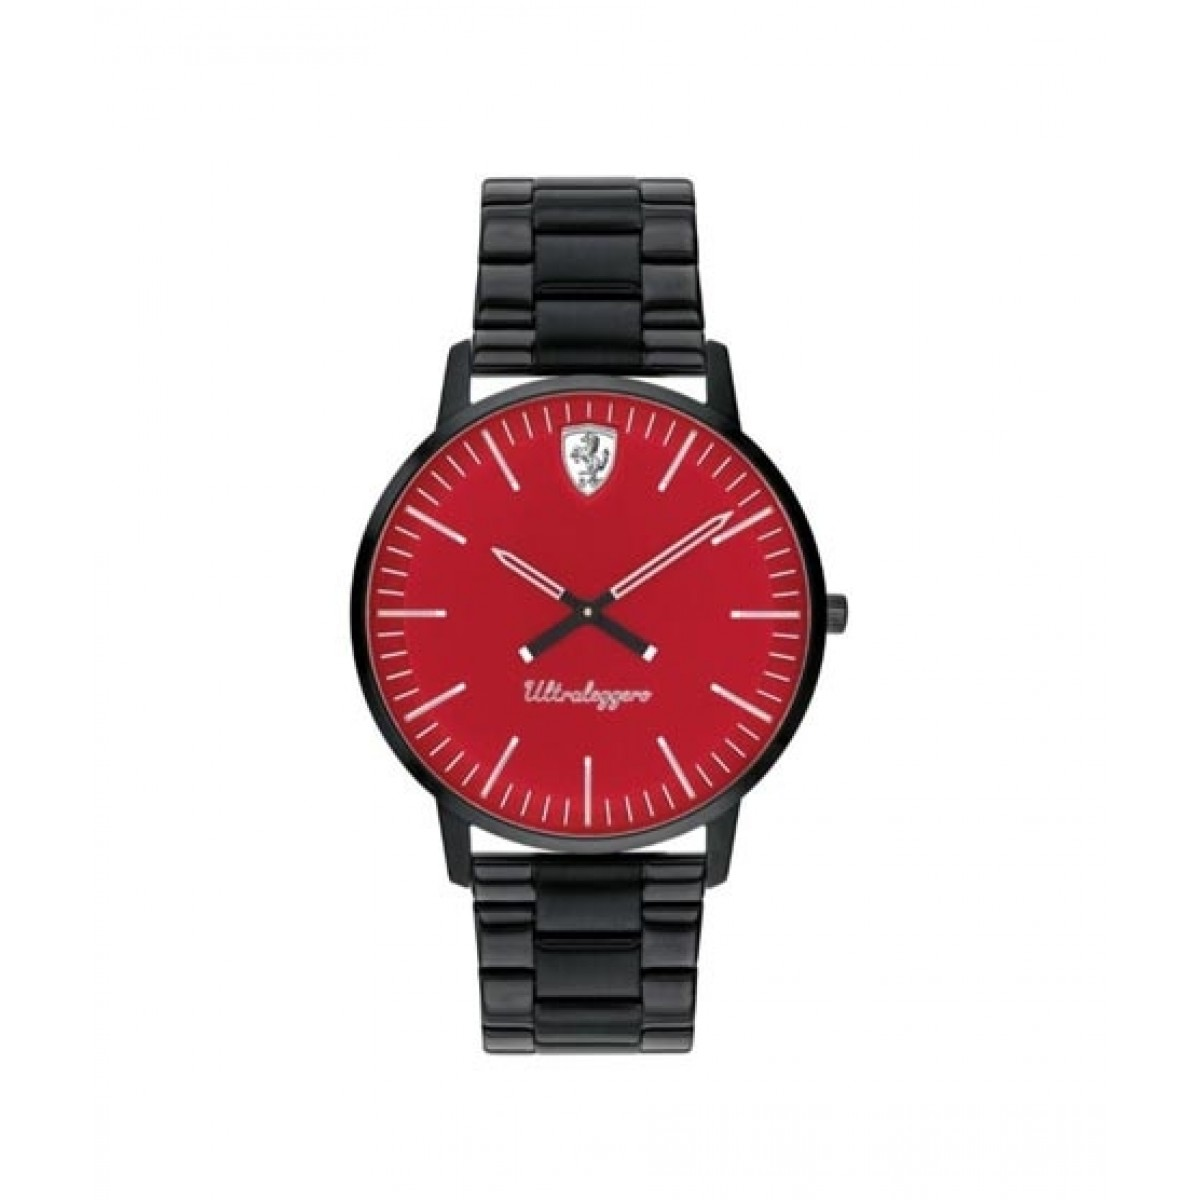 Ferrari Ultraleggero Men's Watch Black (830564)